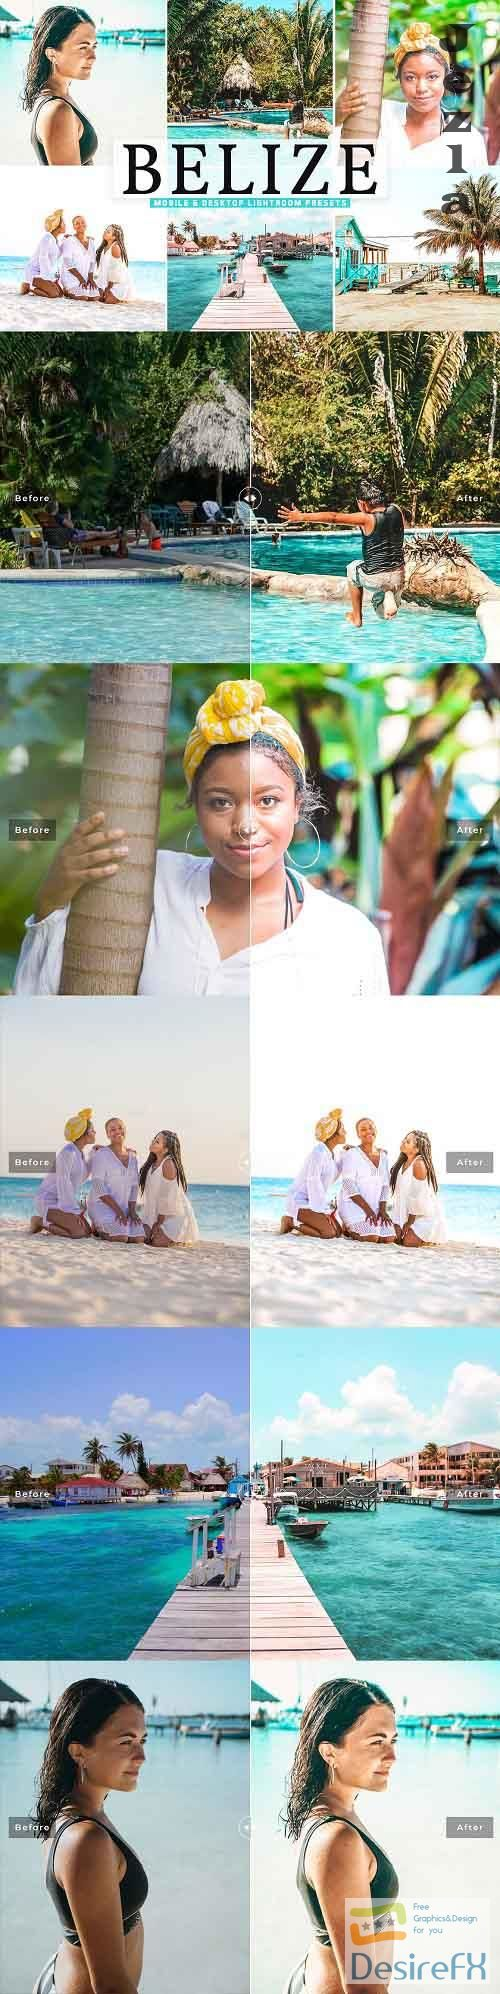 Belize Pro Lightroom Presets - 5542295 - Mobile & Desktop